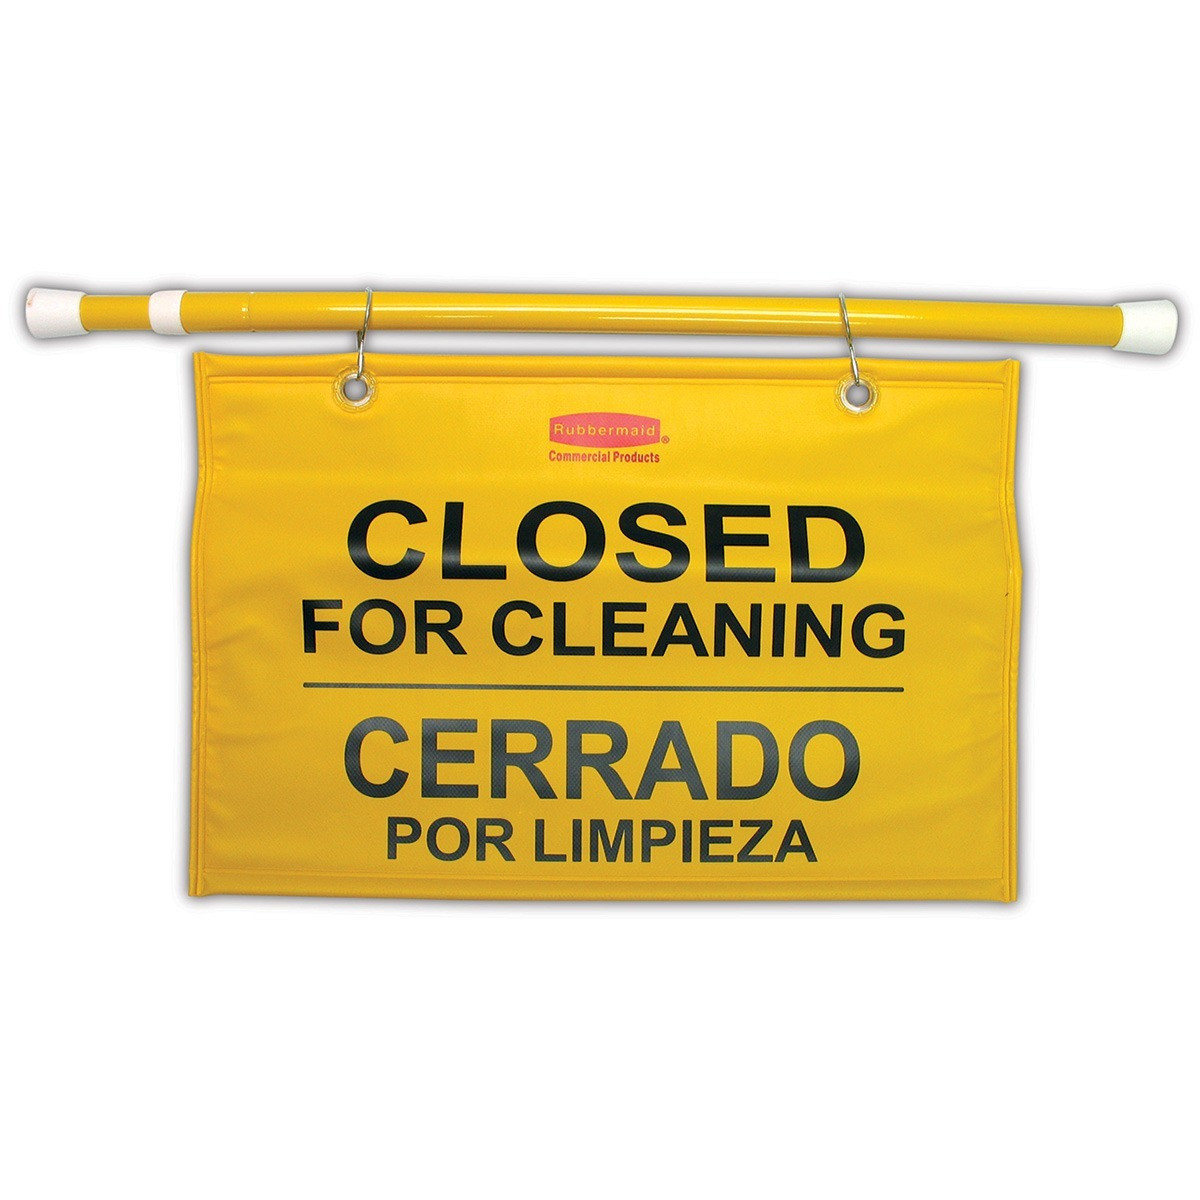 Rubbermaid Hanging Closed For Cleaning Safety Sign